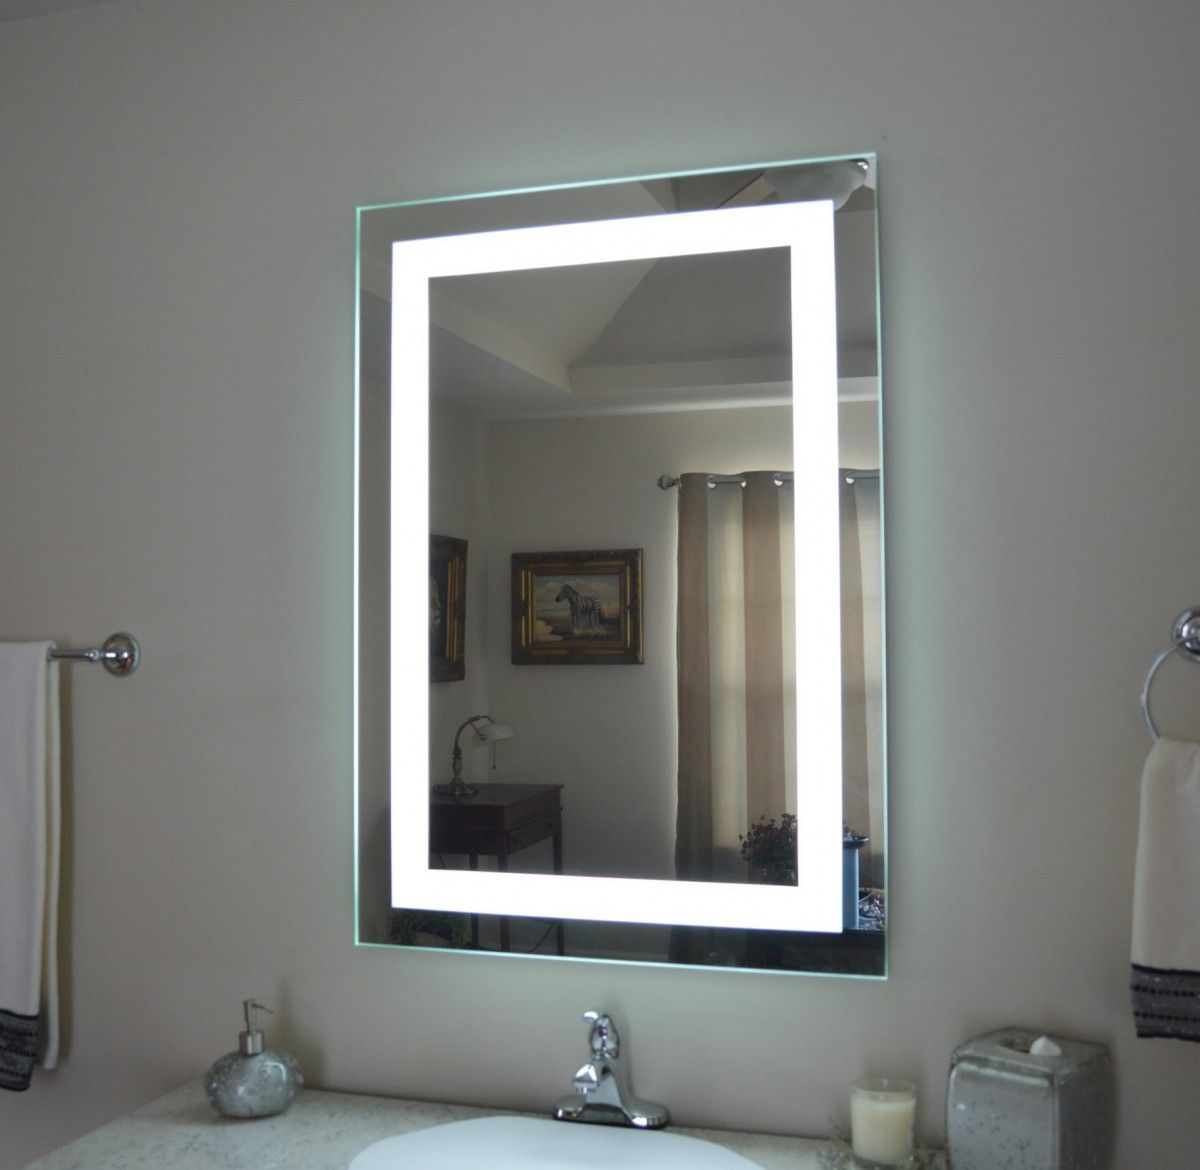 Bathroom mirror led google search asia sf from ayman - Bathroom mirrors and medicine cabinets ...